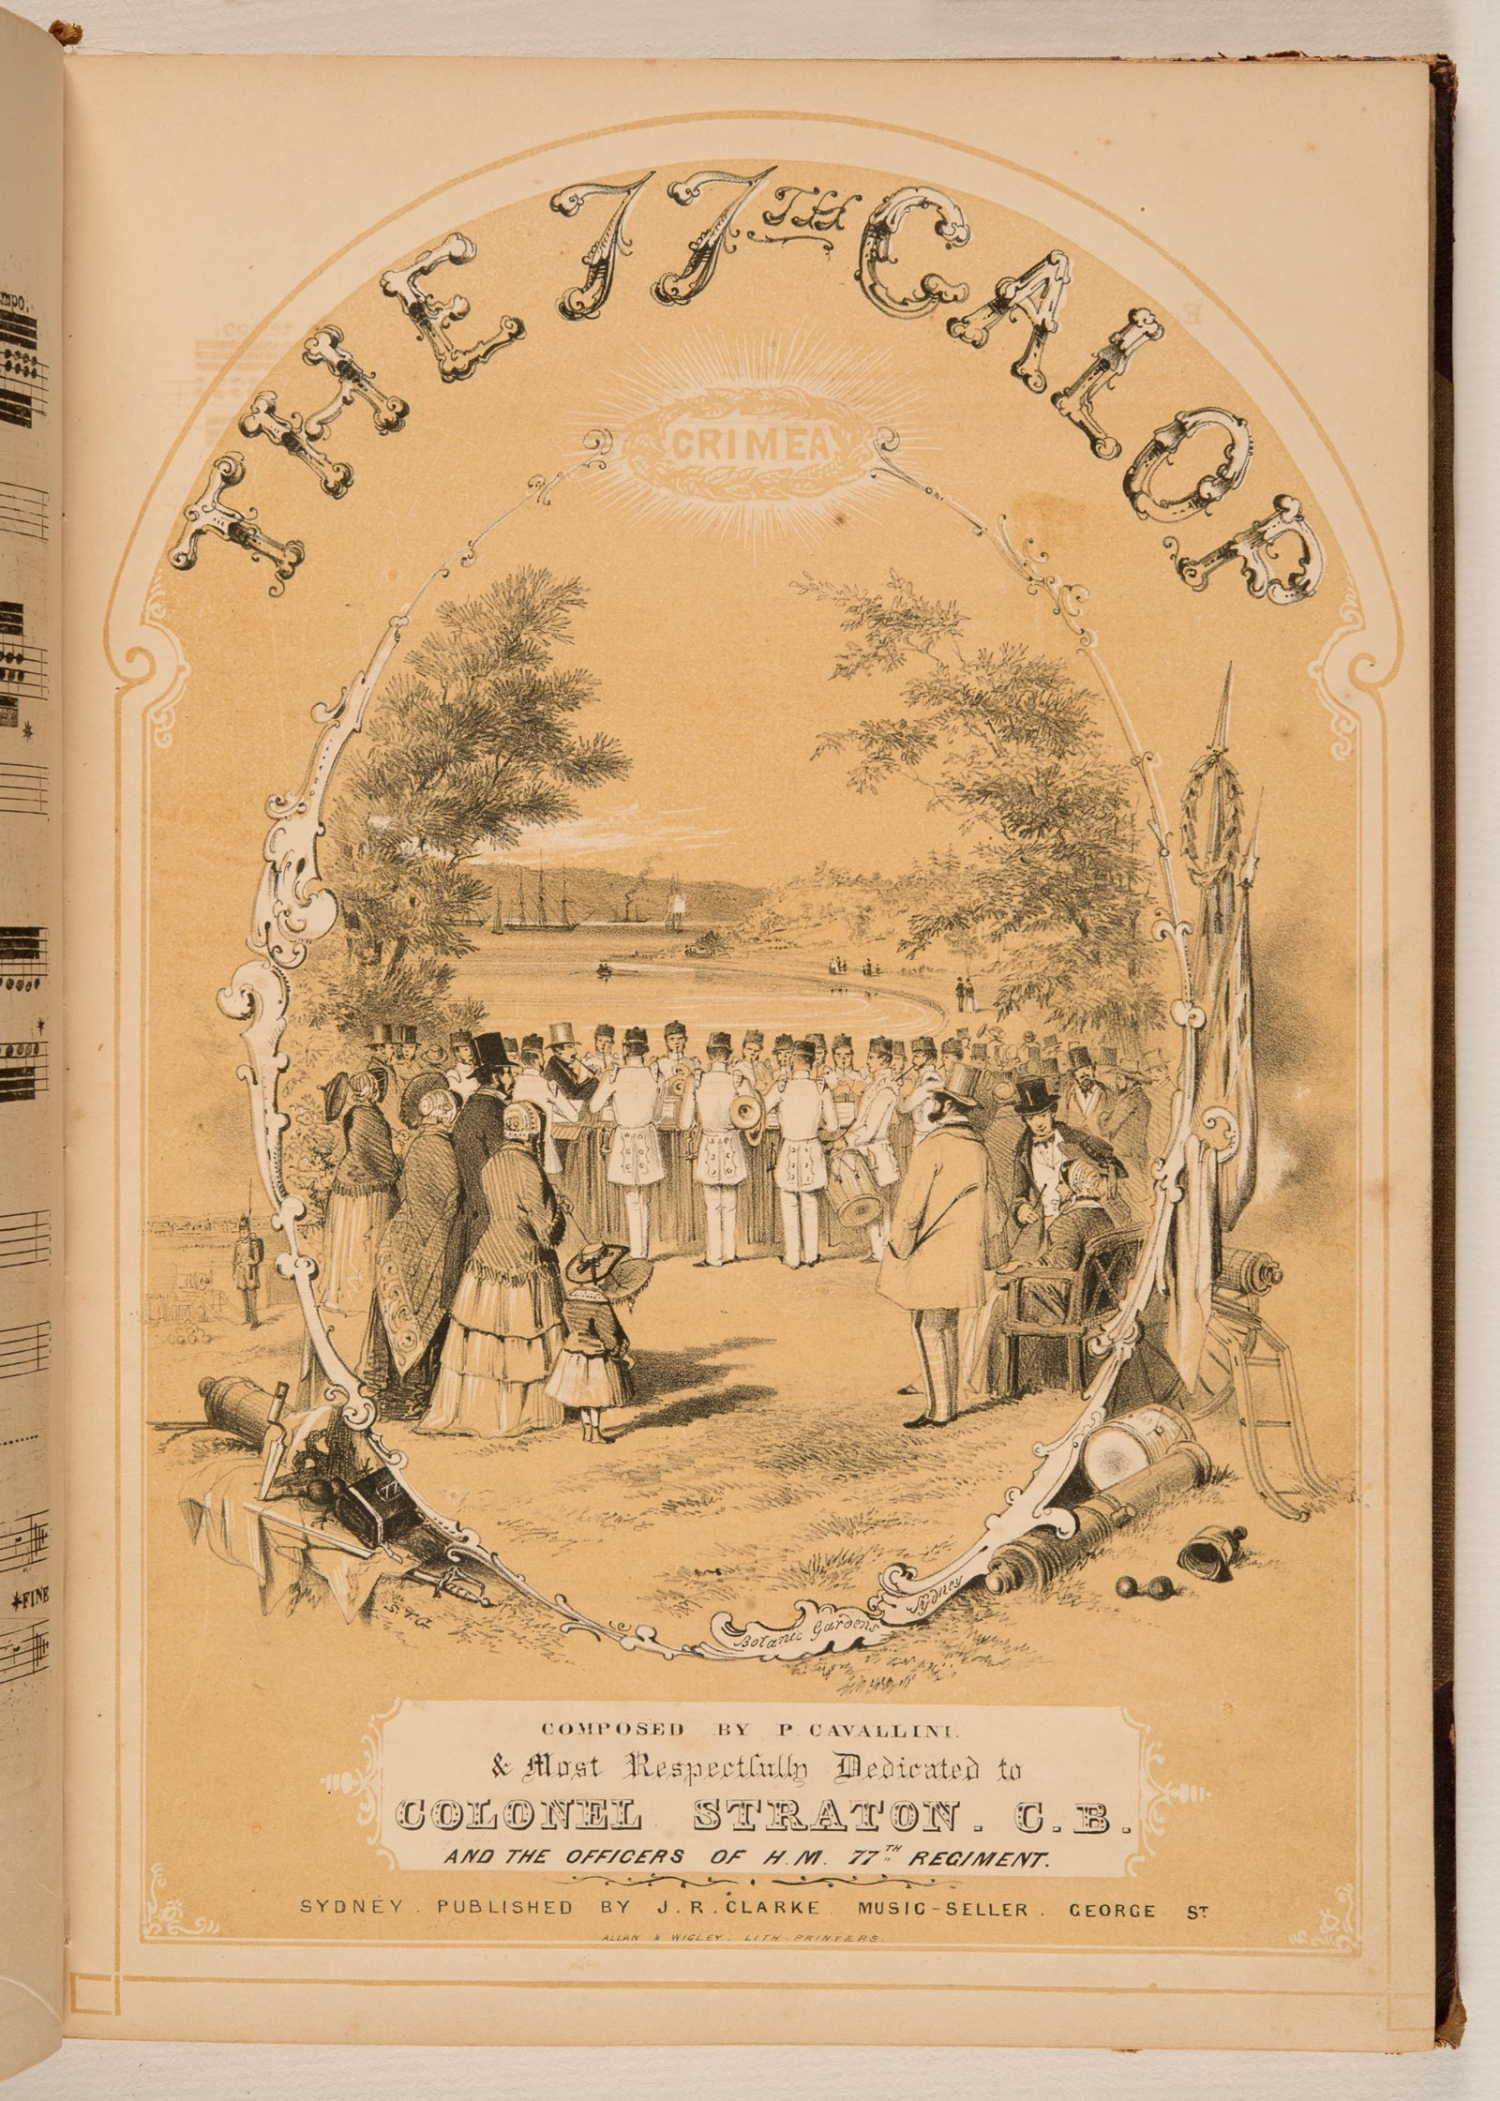 Sheet music, 'The 77th Galop', by P. Cavallini, published 1858